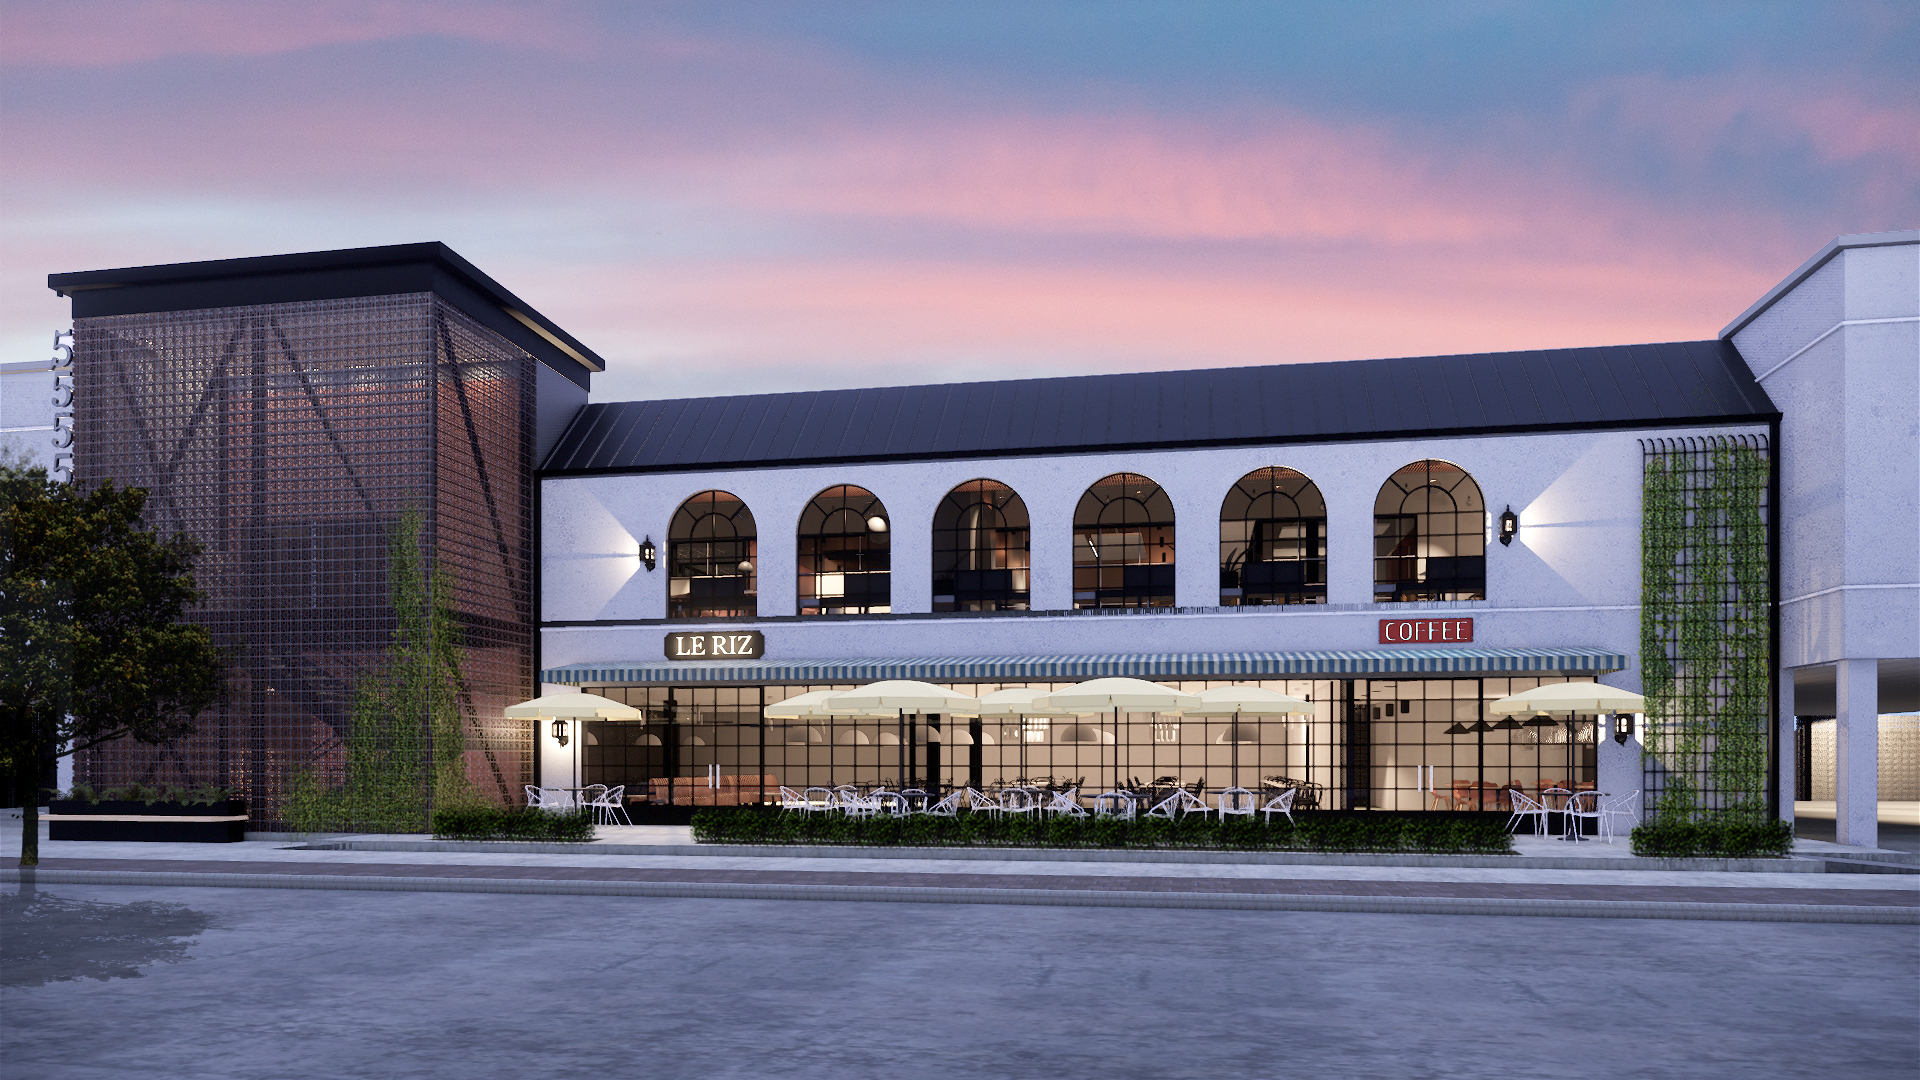 5 Exterior Renovation Projects for a Retail Location That Boost Foot Traffic